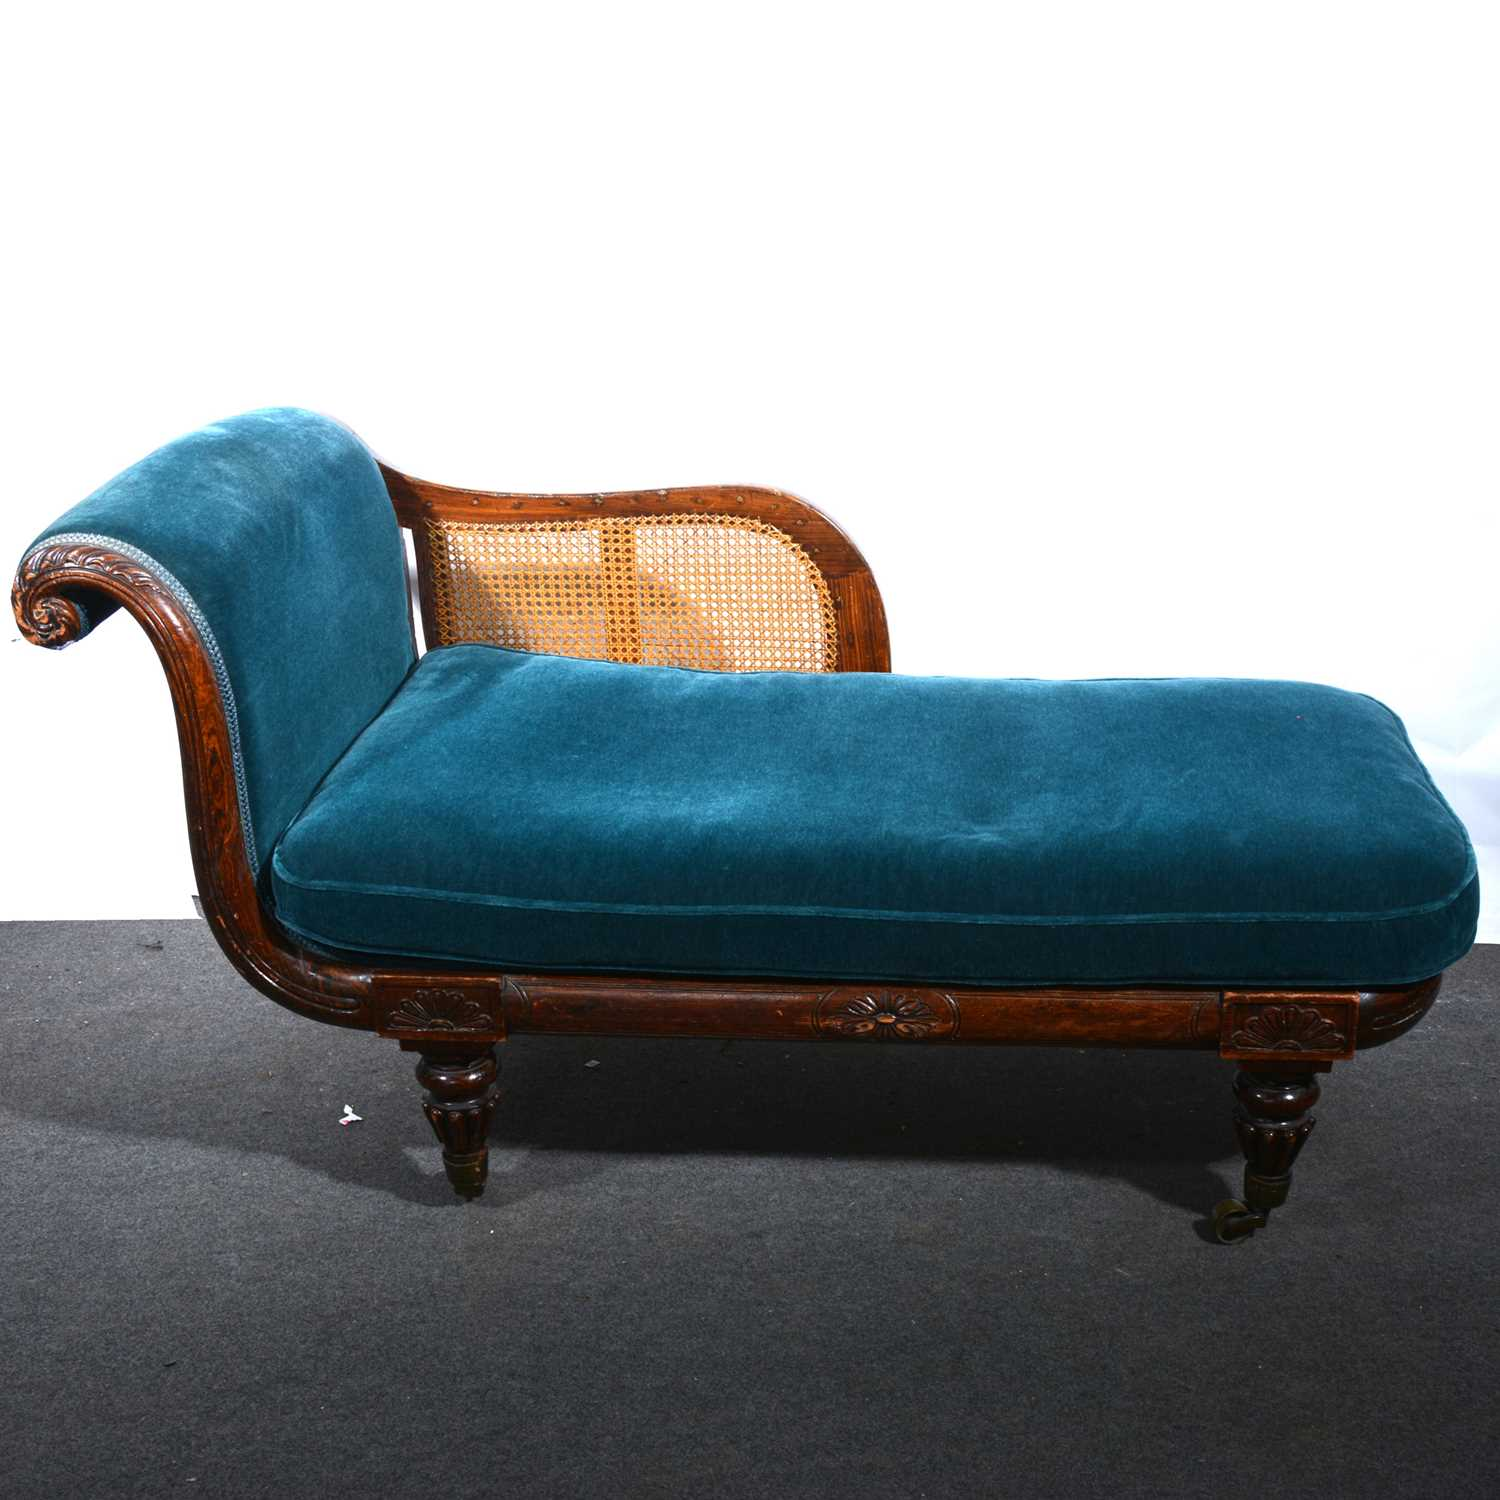 Lot 38 - A Victorian chaise longue.